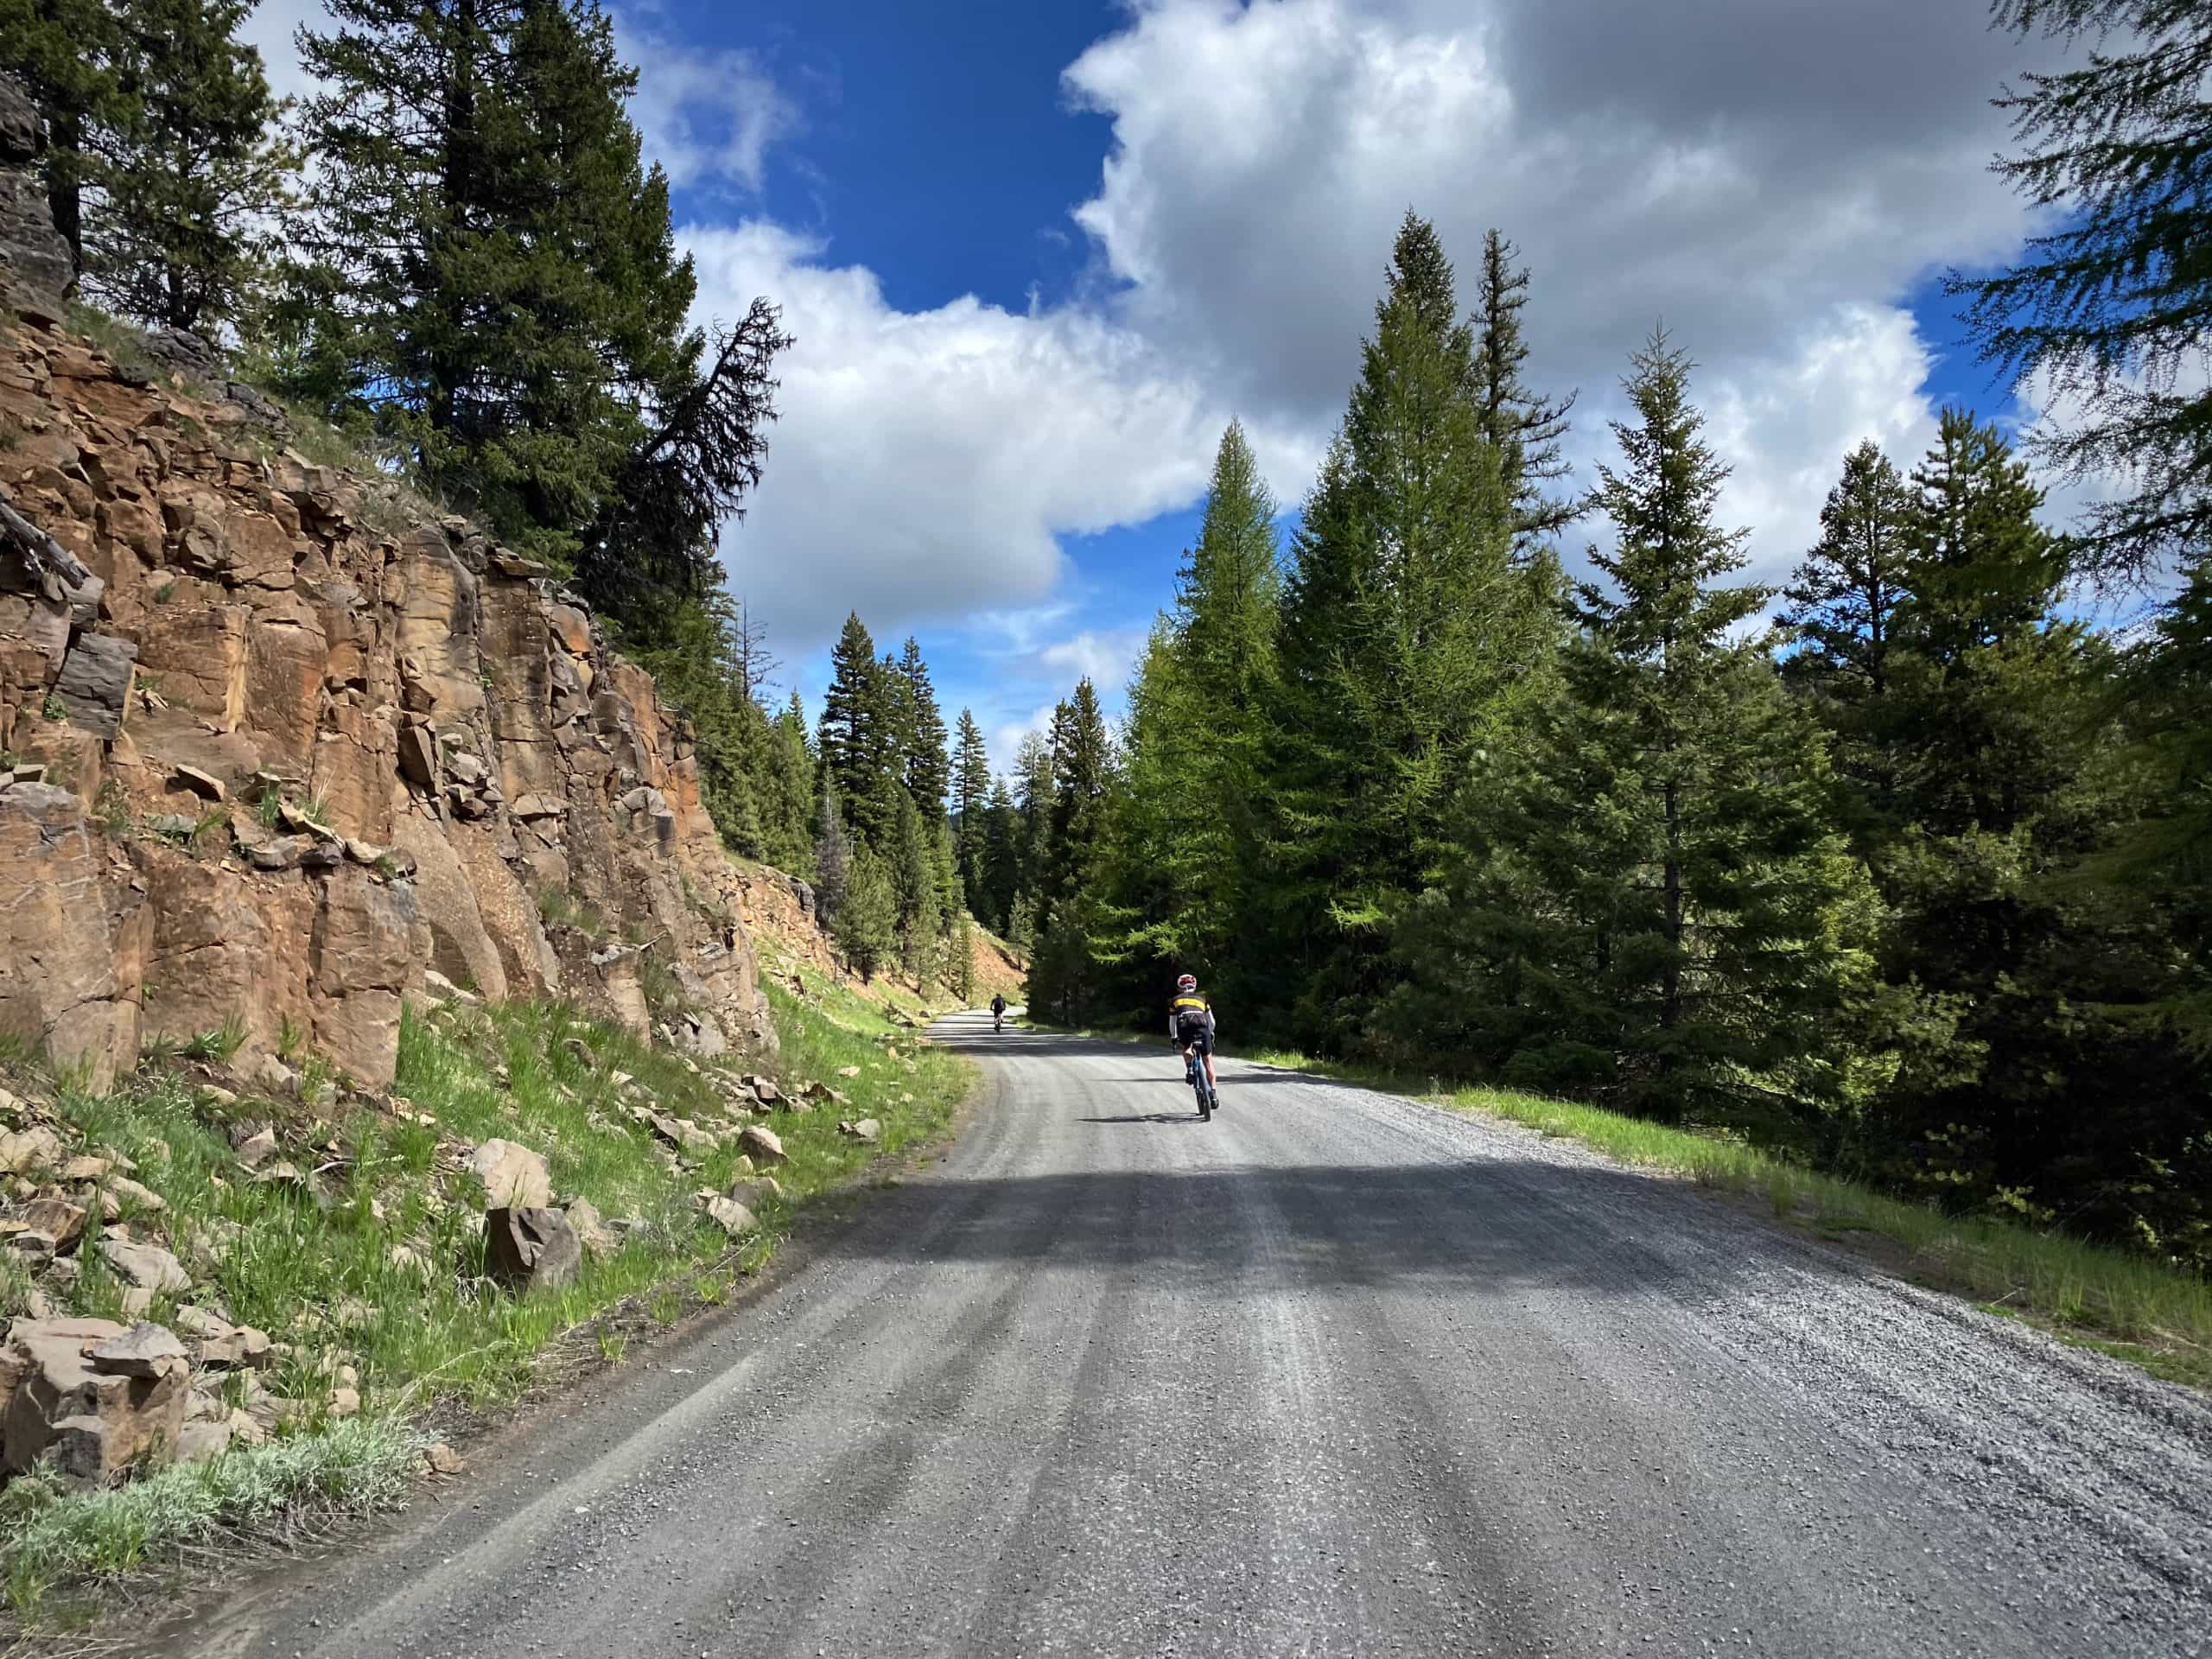 Gravel cyclists descending hill on NF-22 in the Ochoco mountains near Prineville, Oregon.